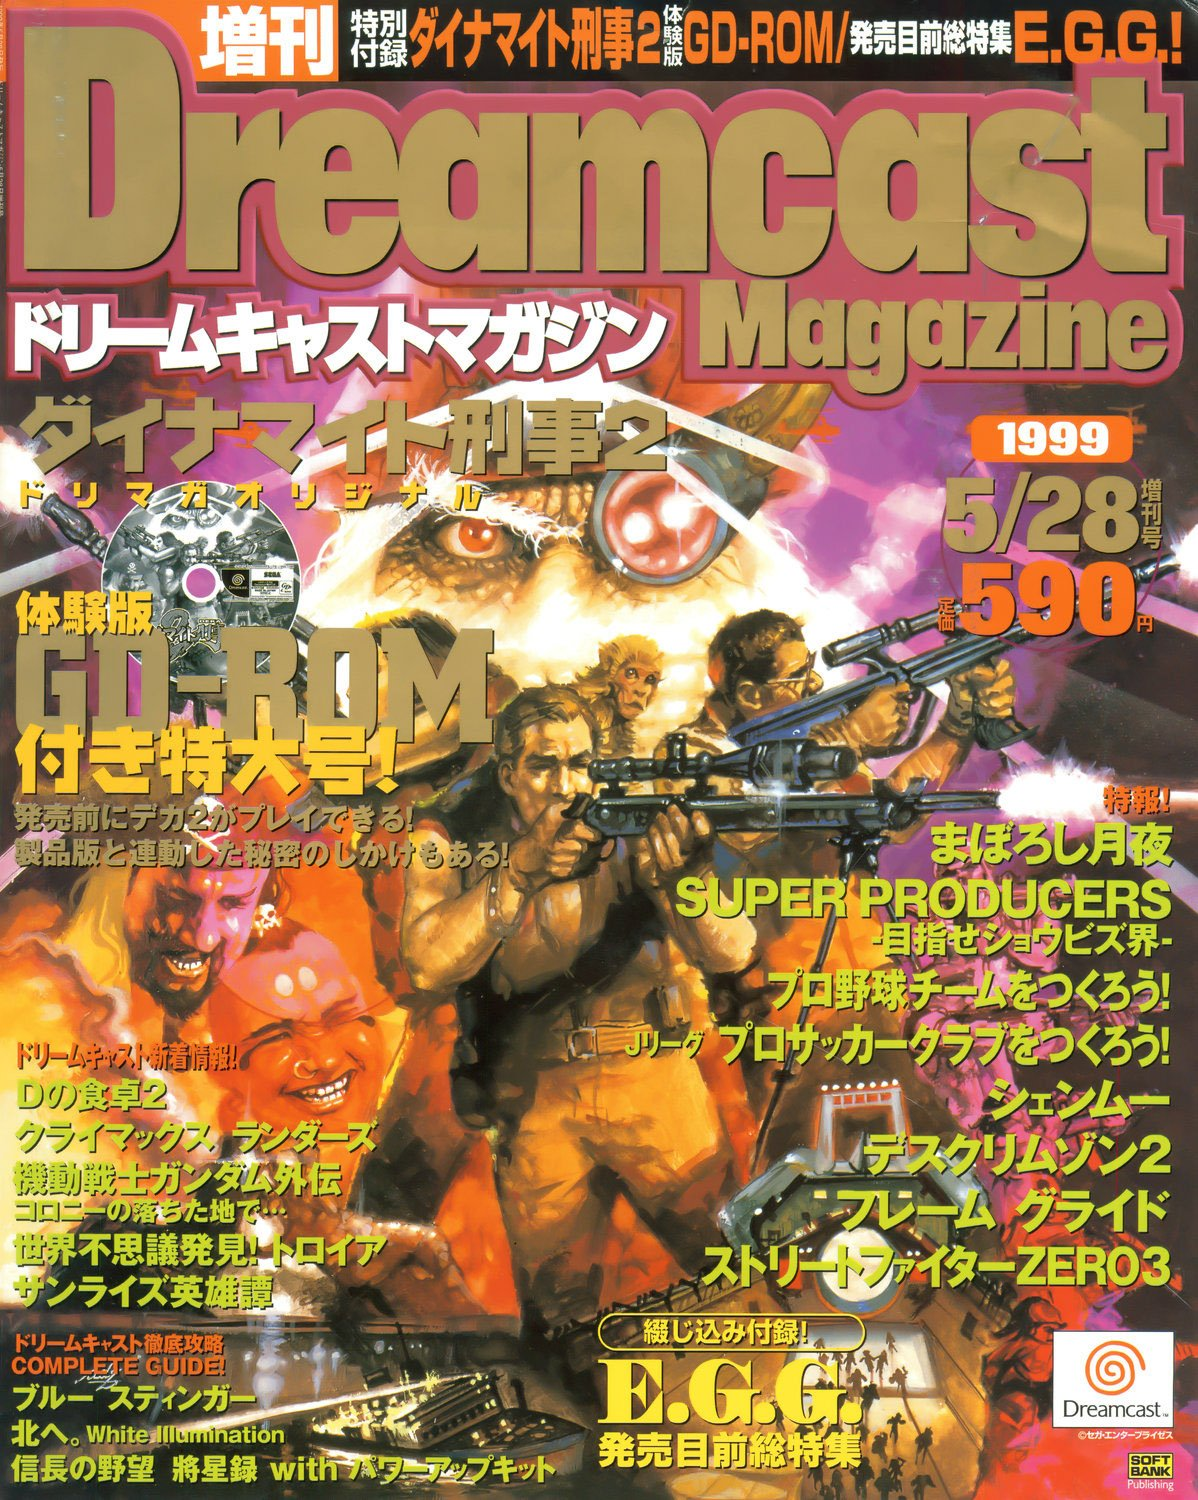 Dreamcast Magazine 024 (May 28, 1999)